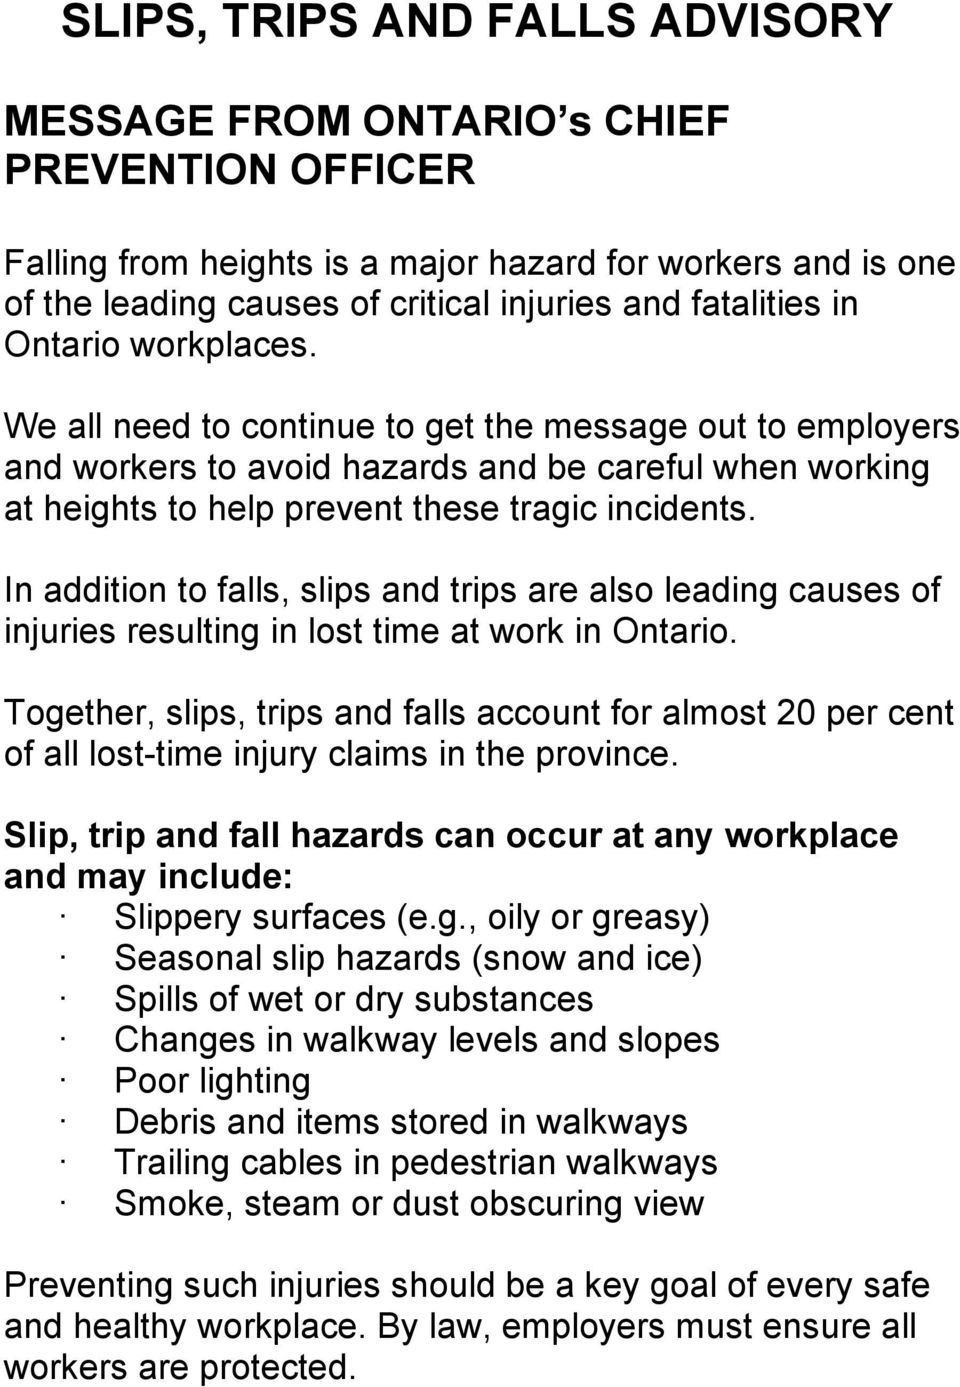 In addition to falls, slips and trips are also leading causes of injuries resulting in lost time at work in Ontario.